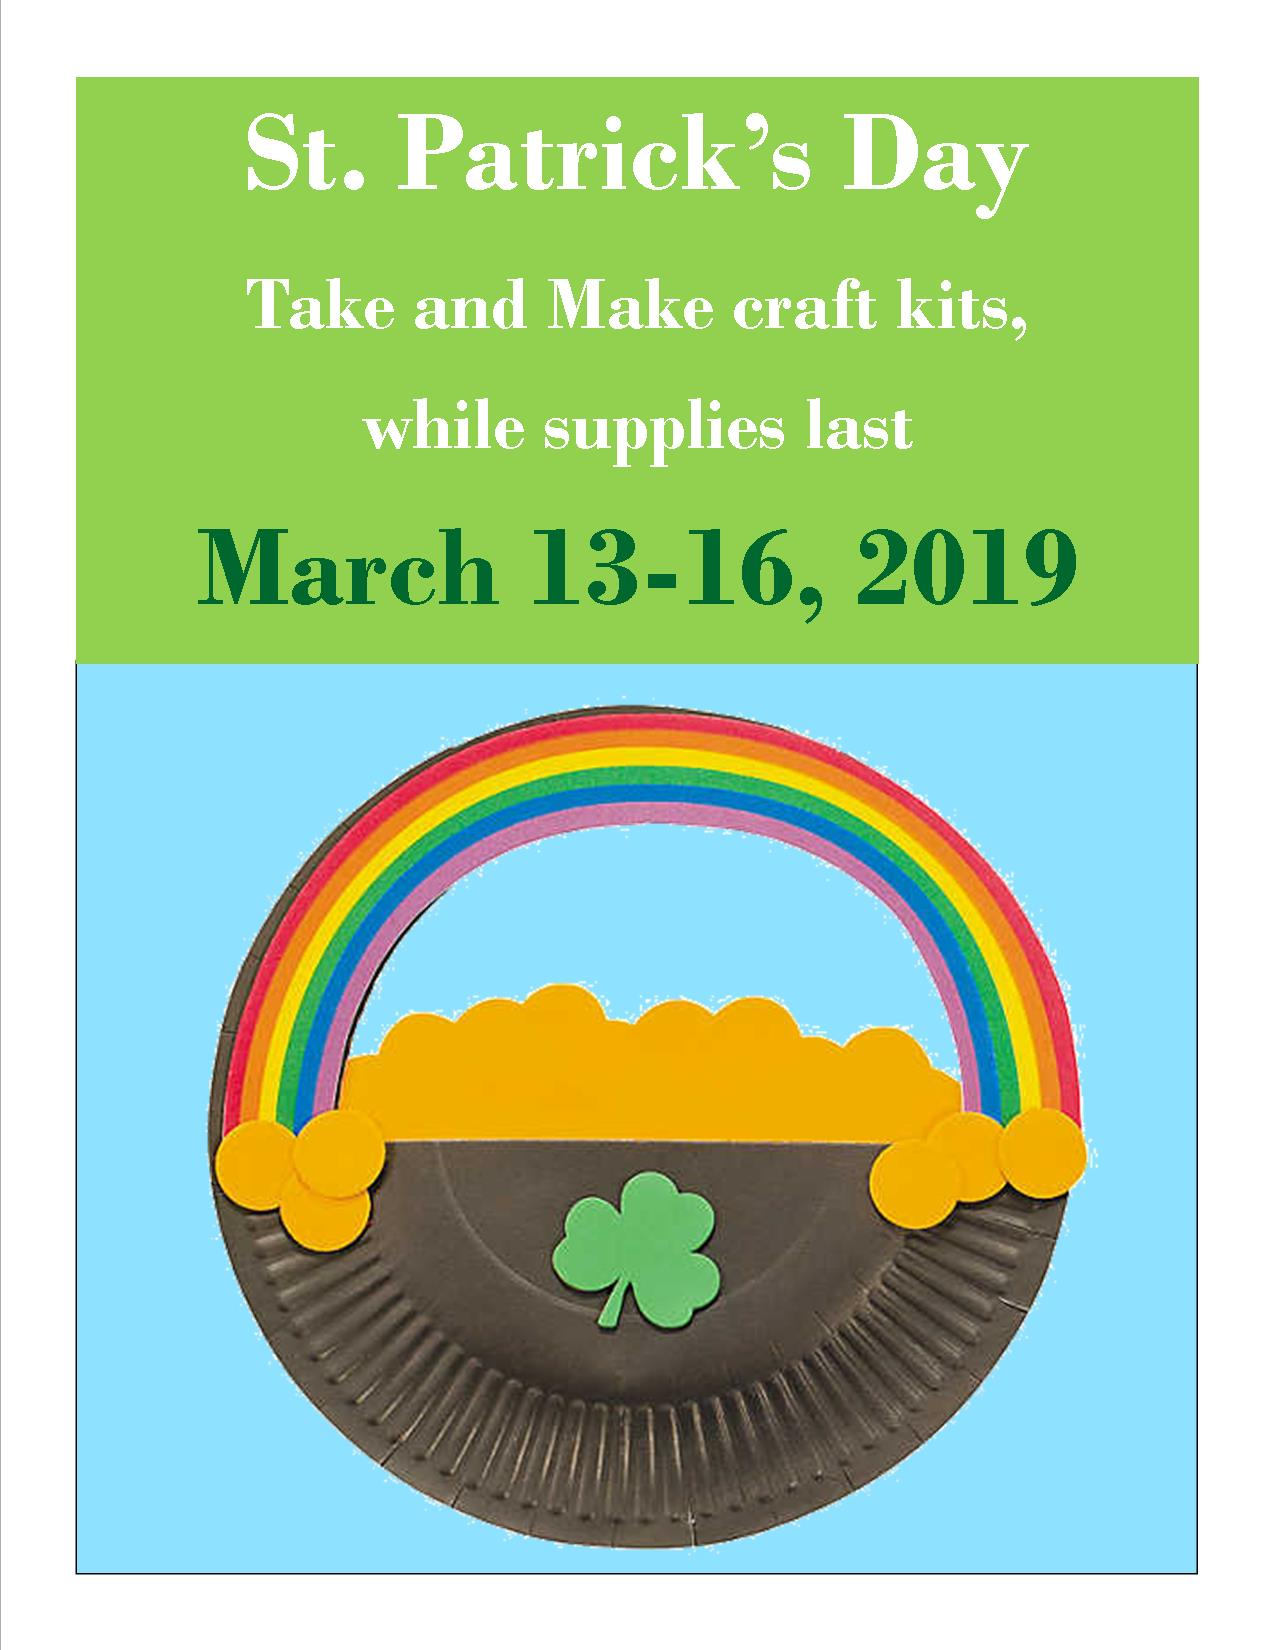 Picture of the St. Patrick's Take and Make craft